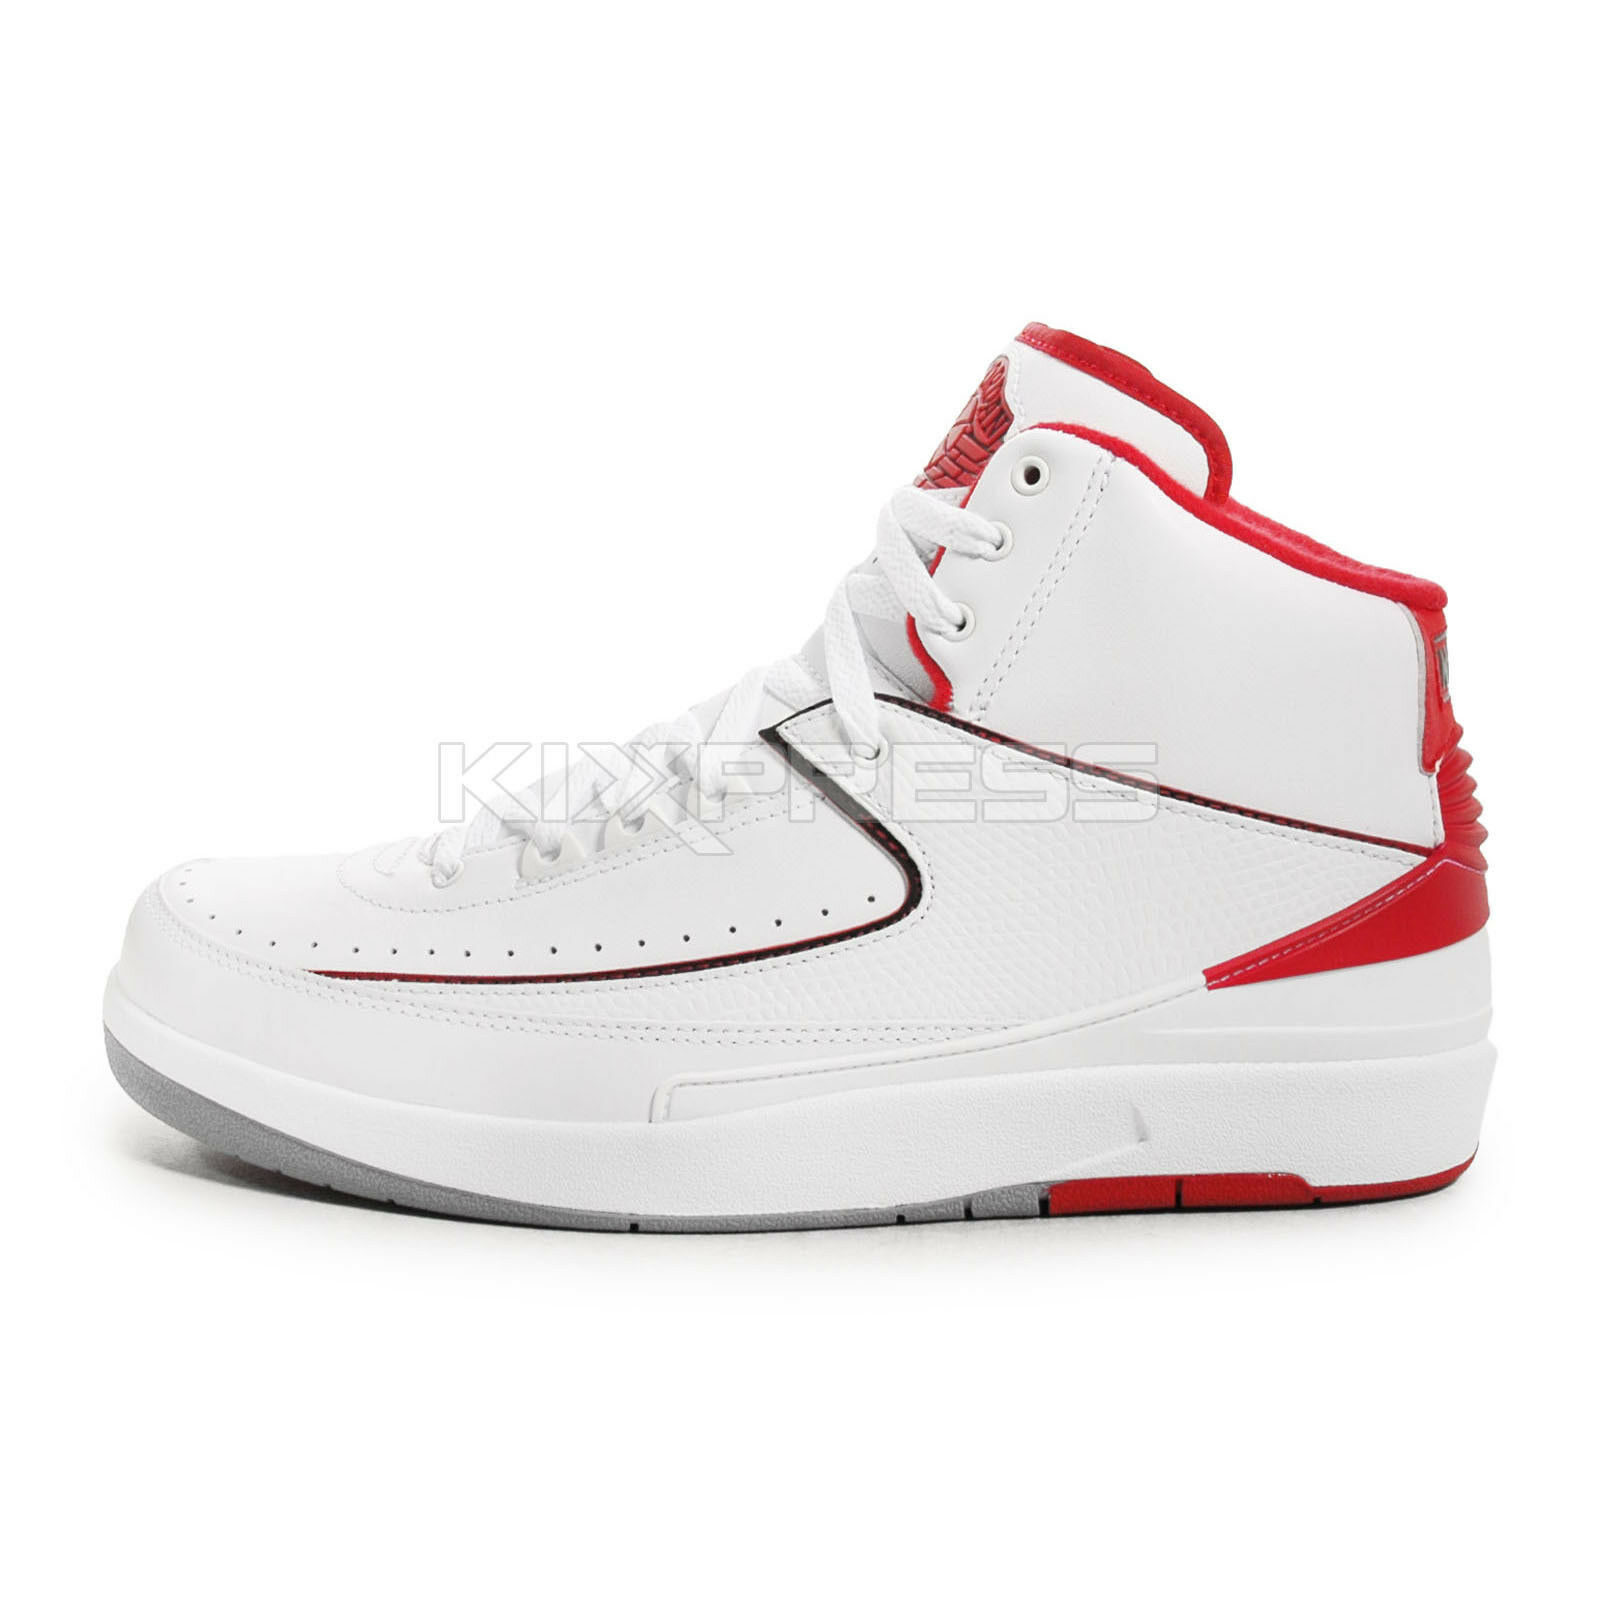 8fa3bdfe516 hot sale Nike Air Jordan 2 Retro [385475-102] Basketball White/Black ...